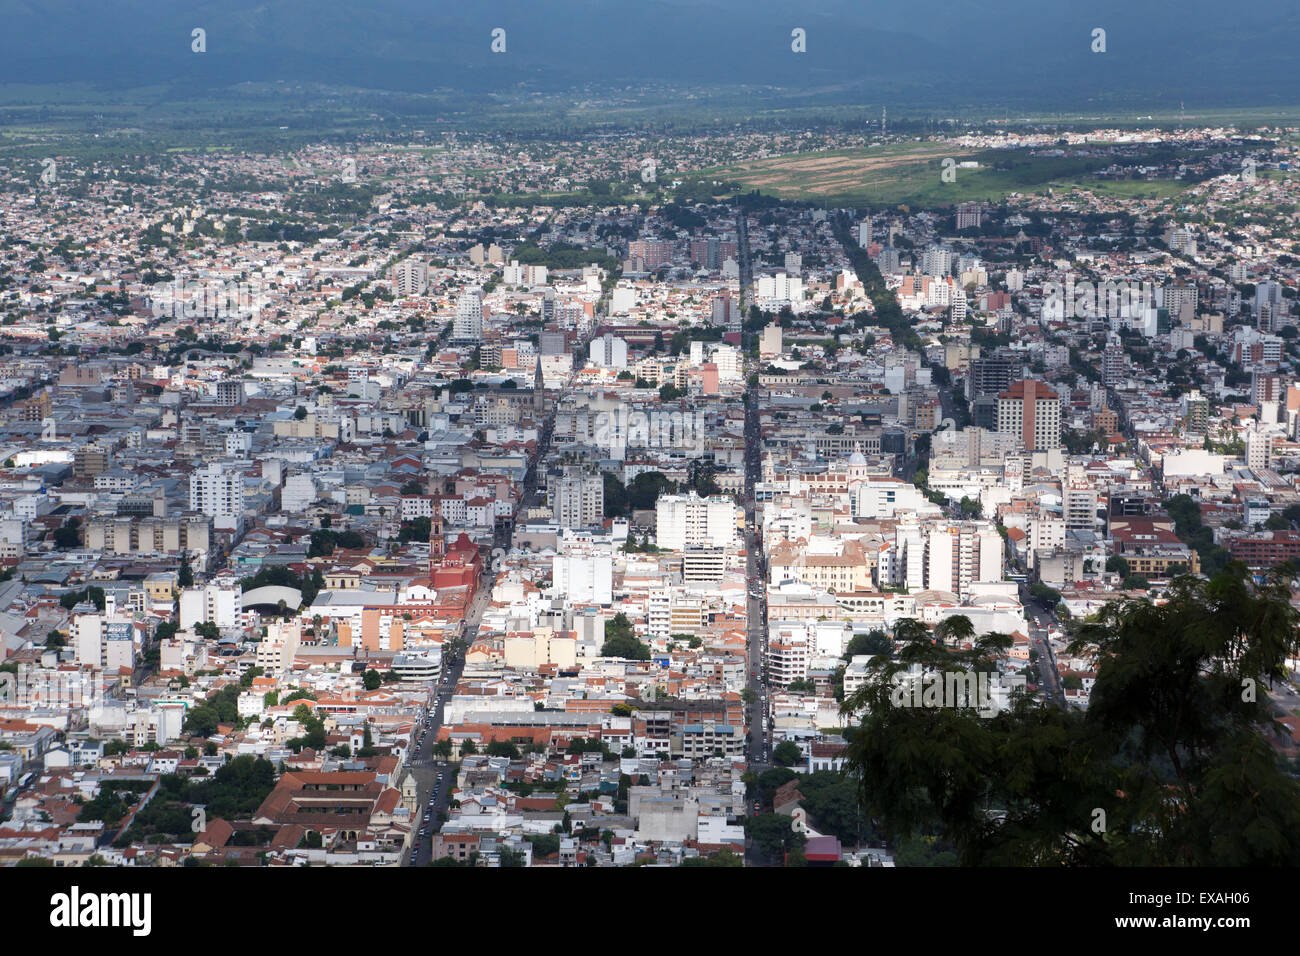 Salta from above, Argentina, South America - Stock Image